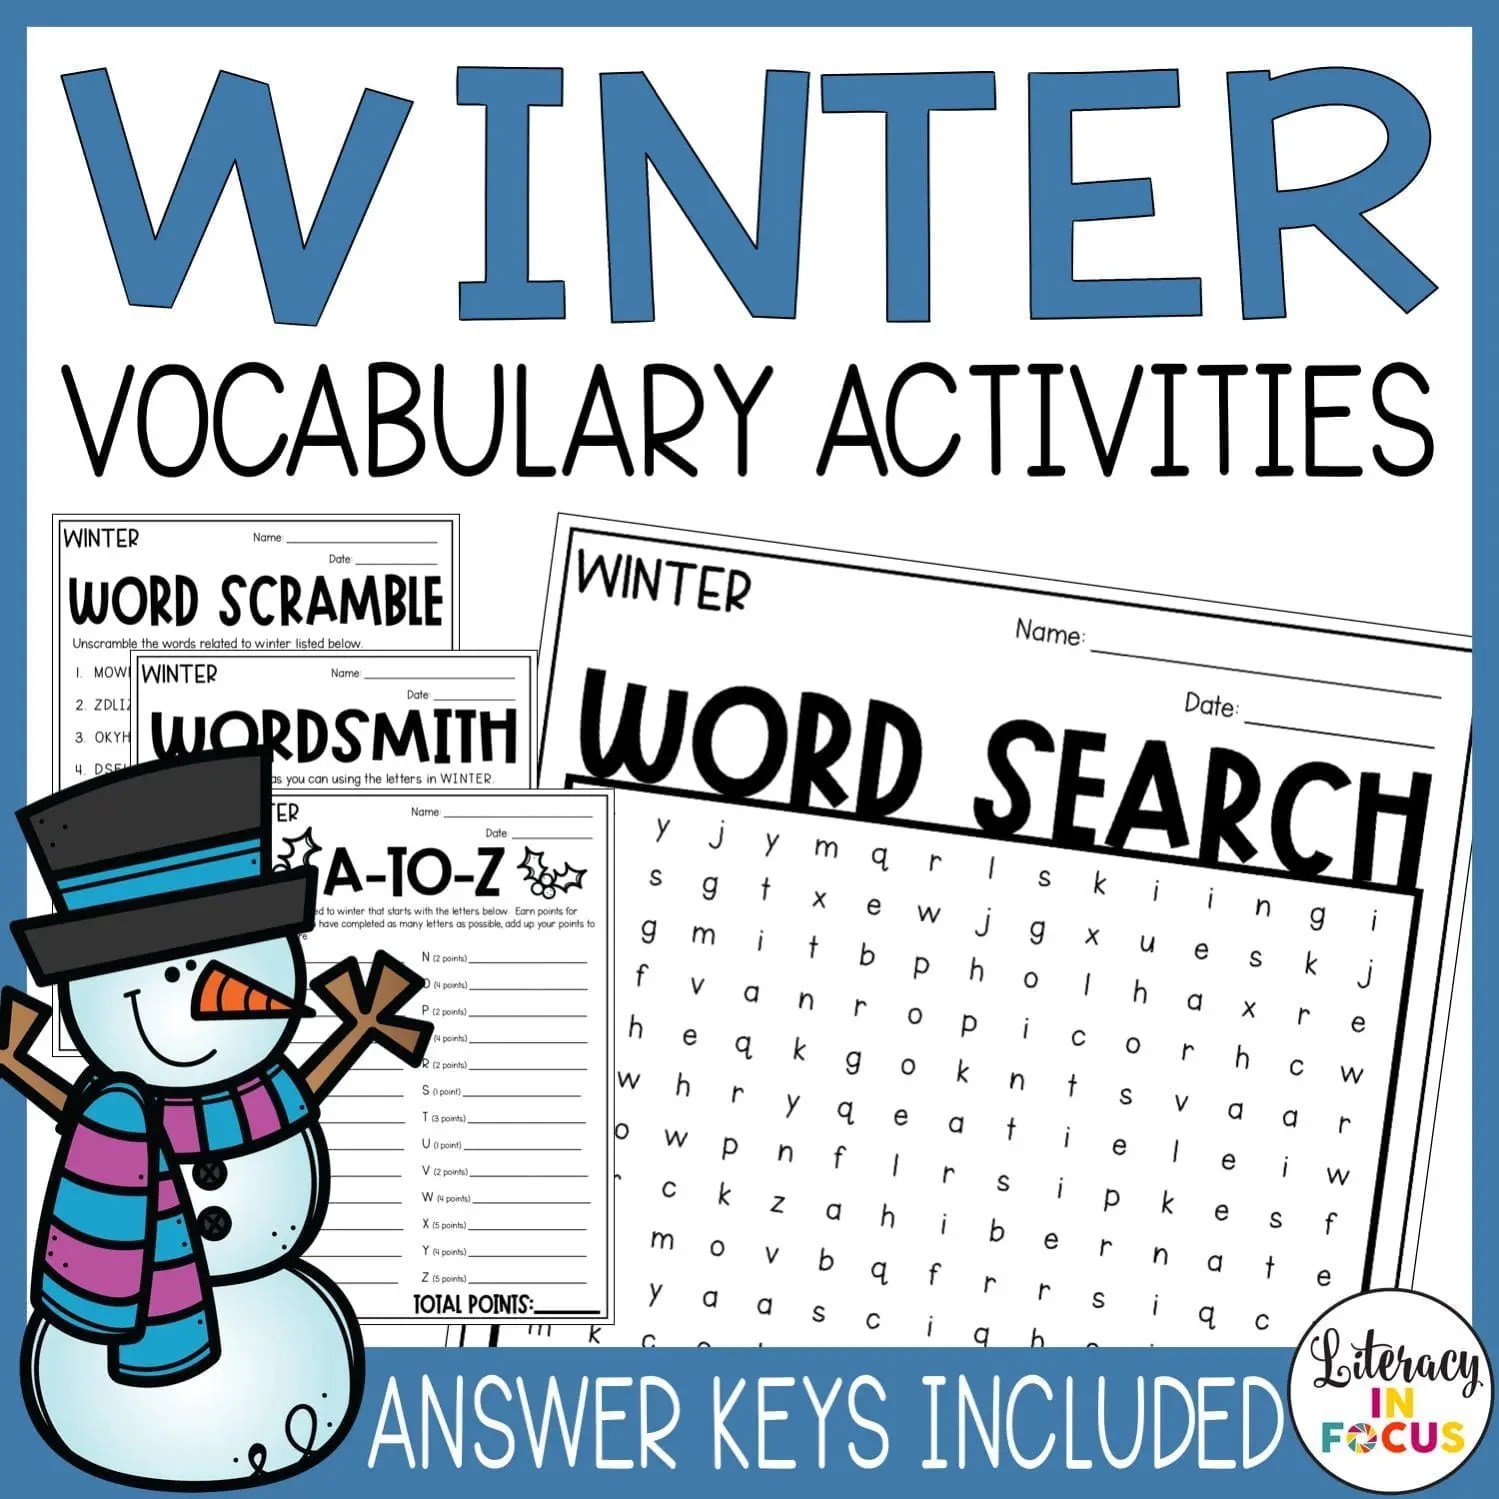 4 Winter Vocabulary Activities Your Students Will Love